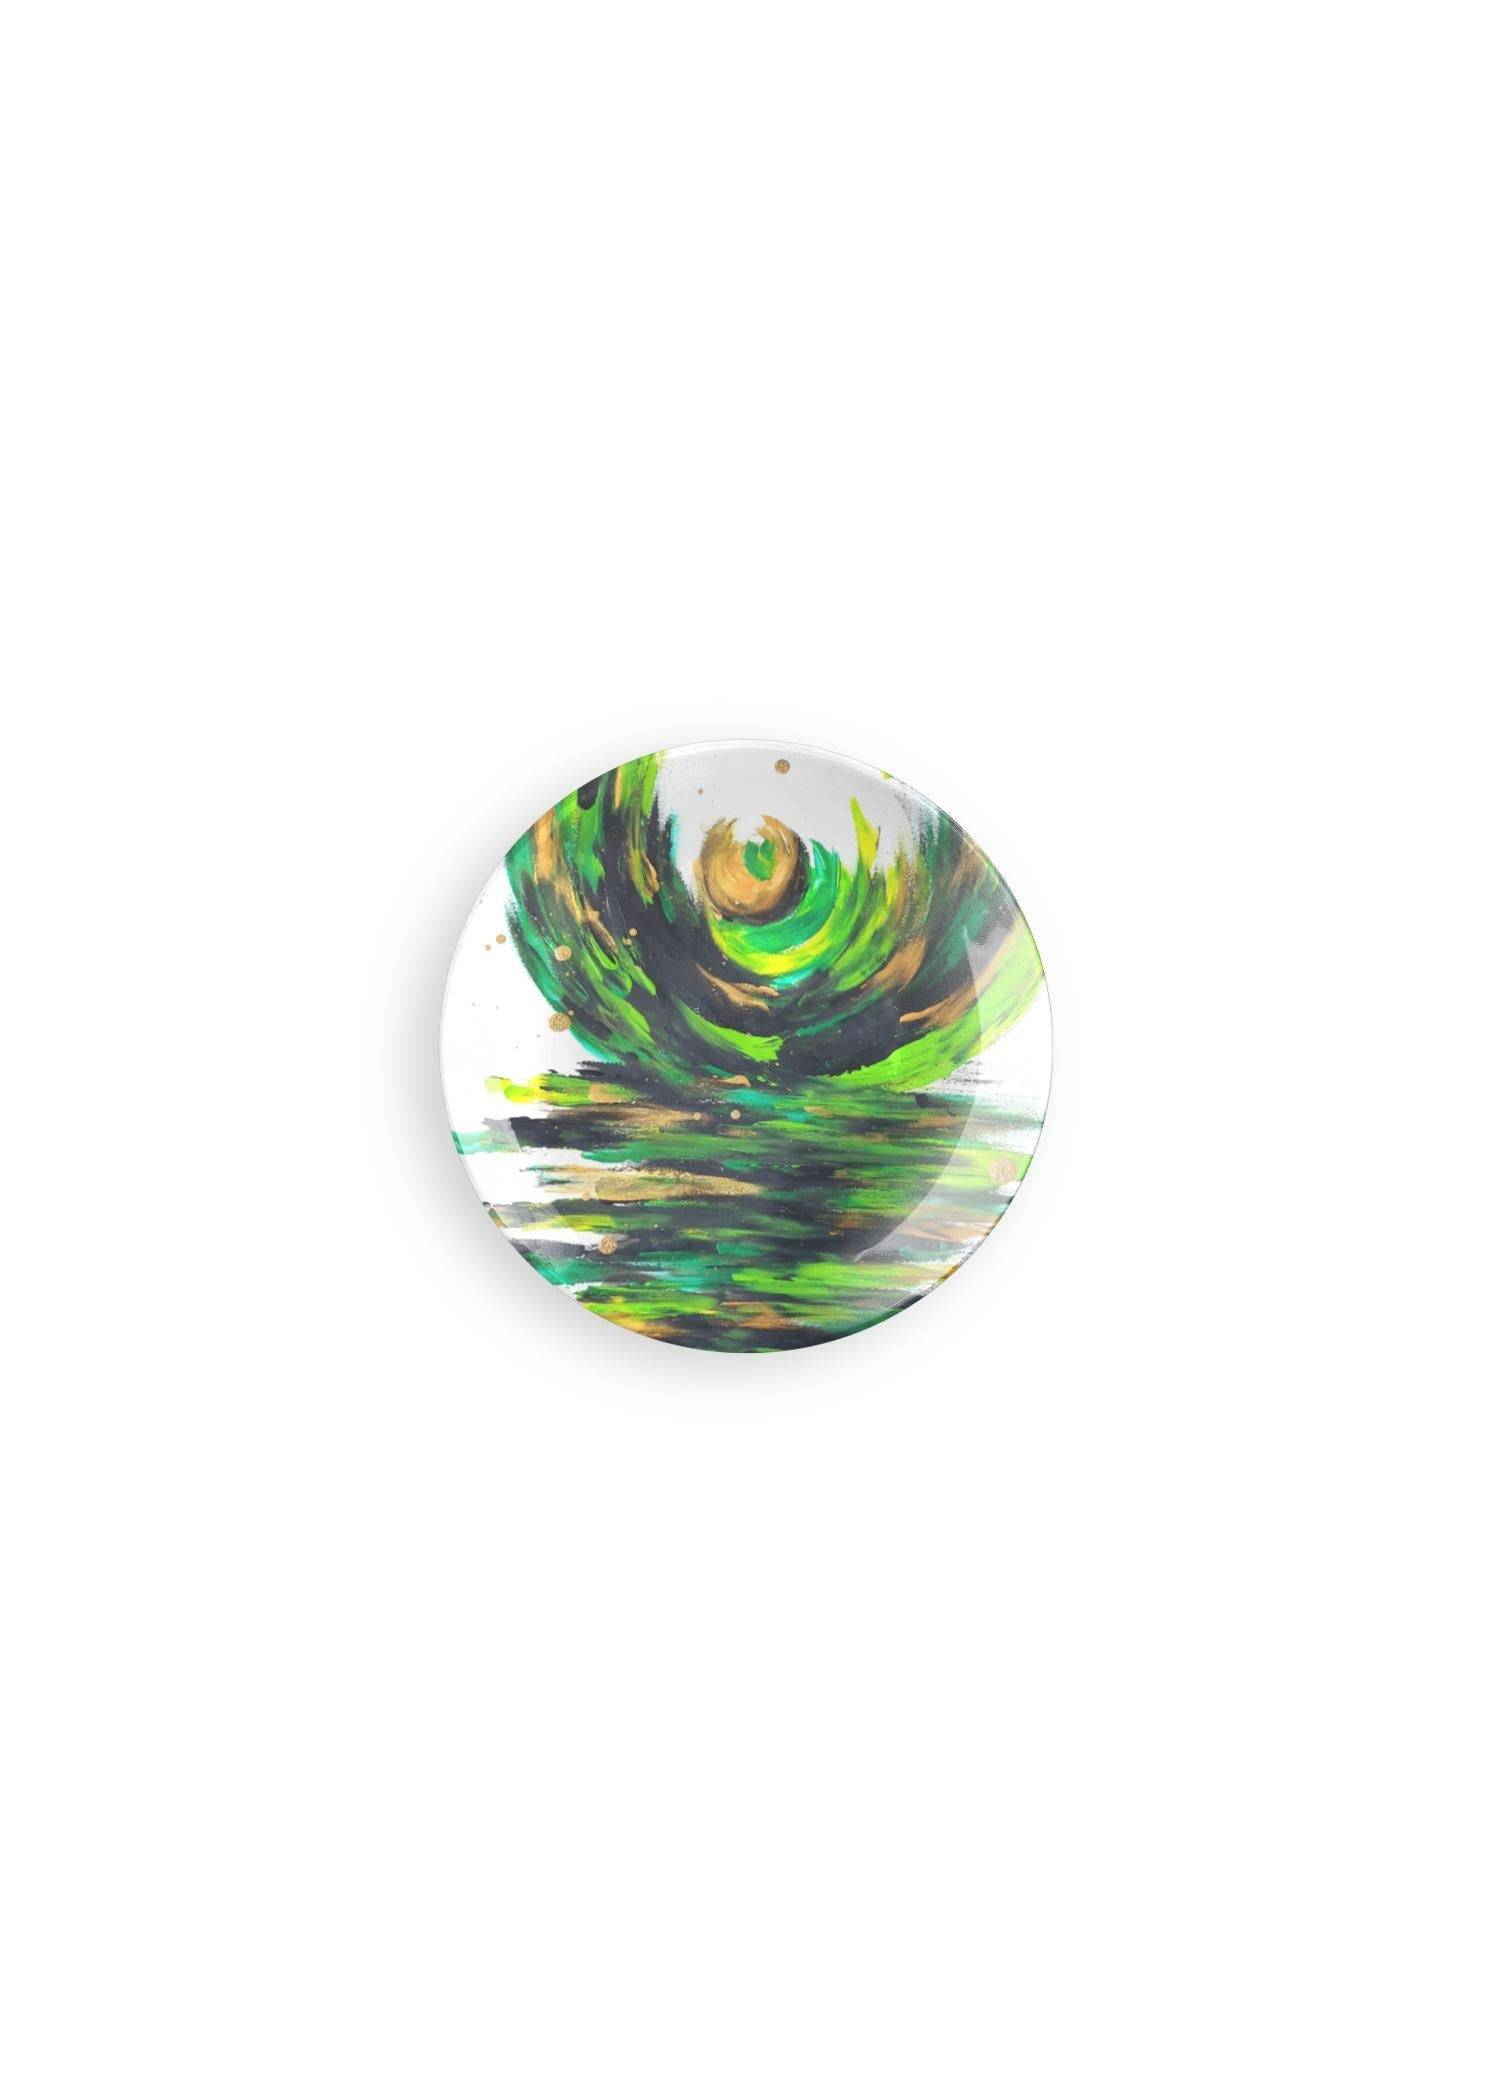 VIDA Round Glass Tray - Love Sees No Boundaries in Green/White/Yellow by VIDA Original Artist  - Size: Small